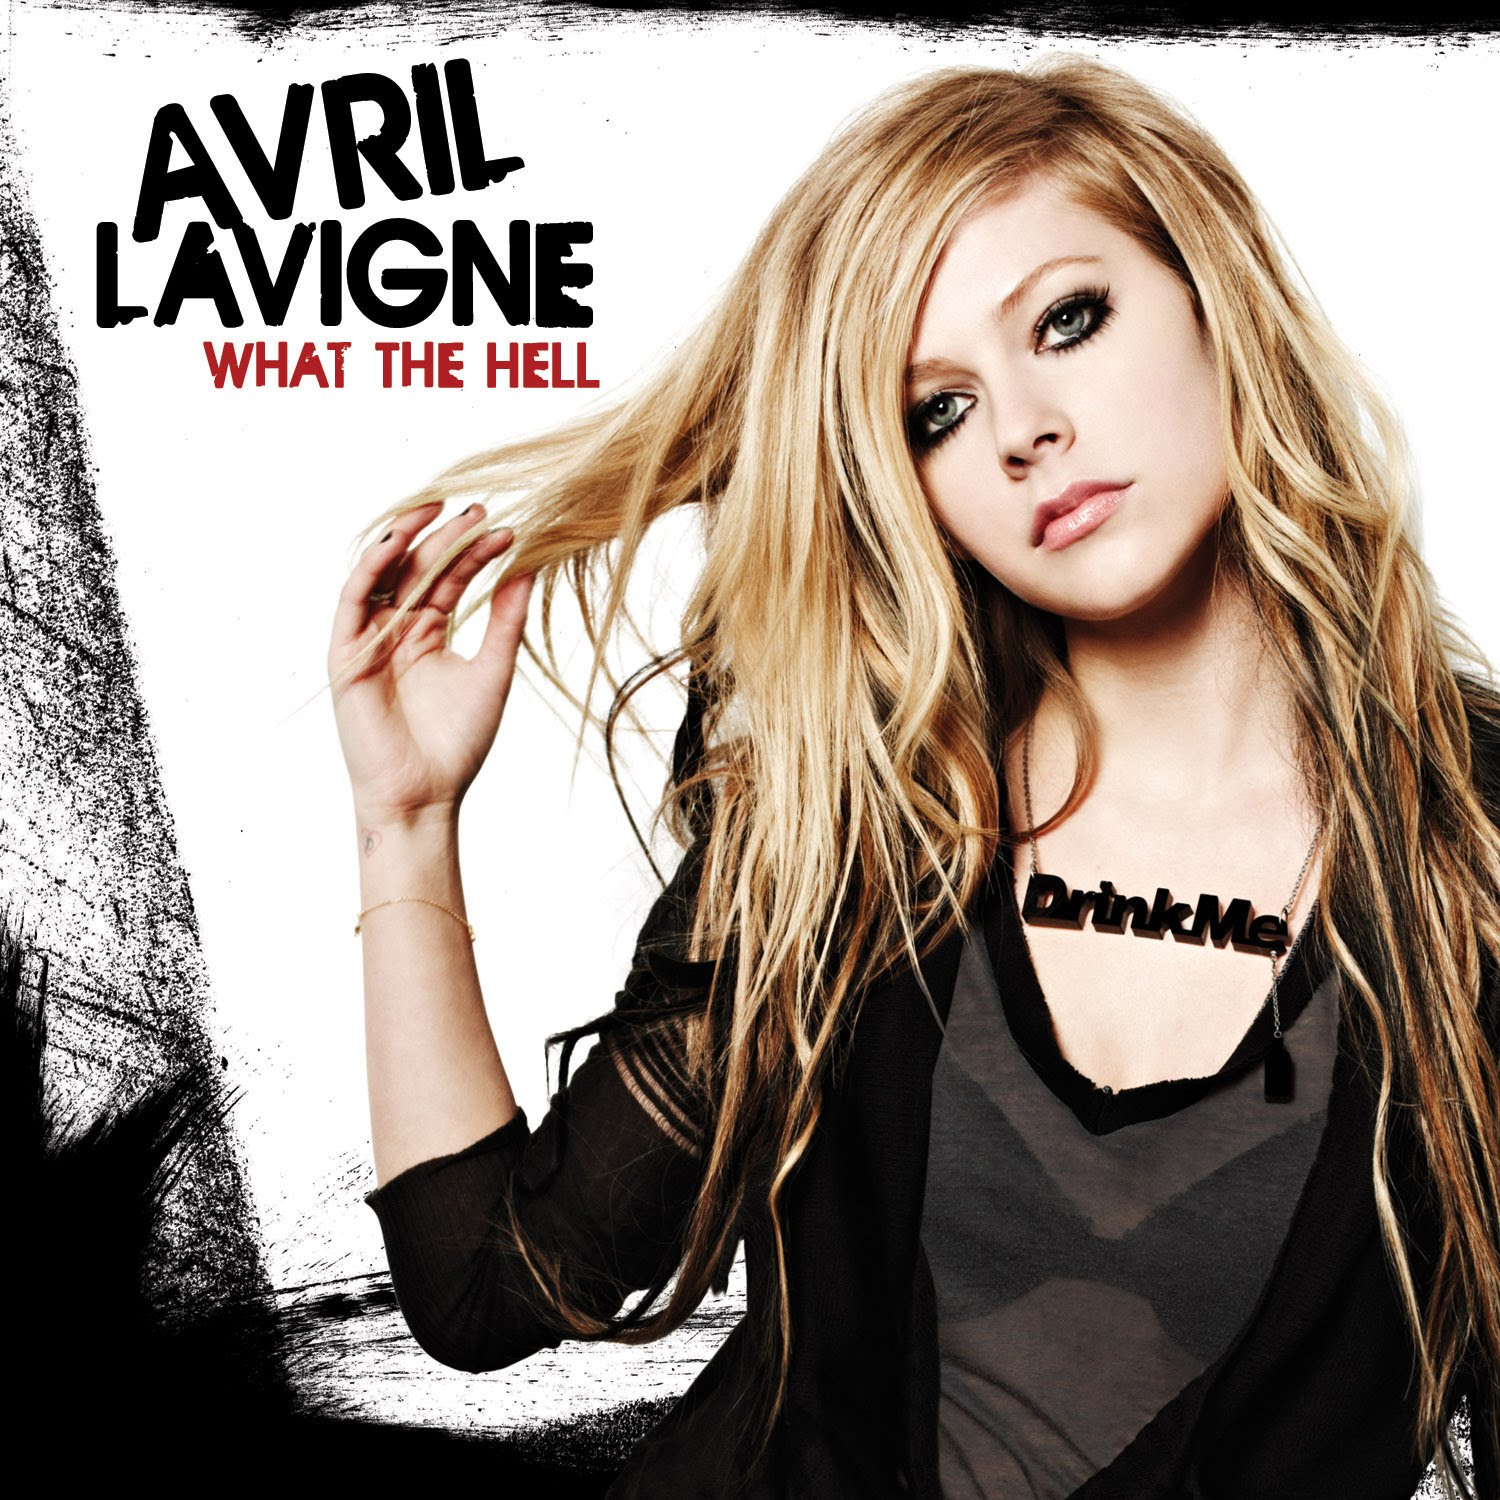 http://3.bp.blogspot.com/-mnNBUb1_9GY/TlnA8UzrRyI/AAAAAAAABg4/2zYTtlDjC2g/s1600/Avril+Lavigne+-+What+the+Hell+%2528Official+Single+Cover%2529.jpg